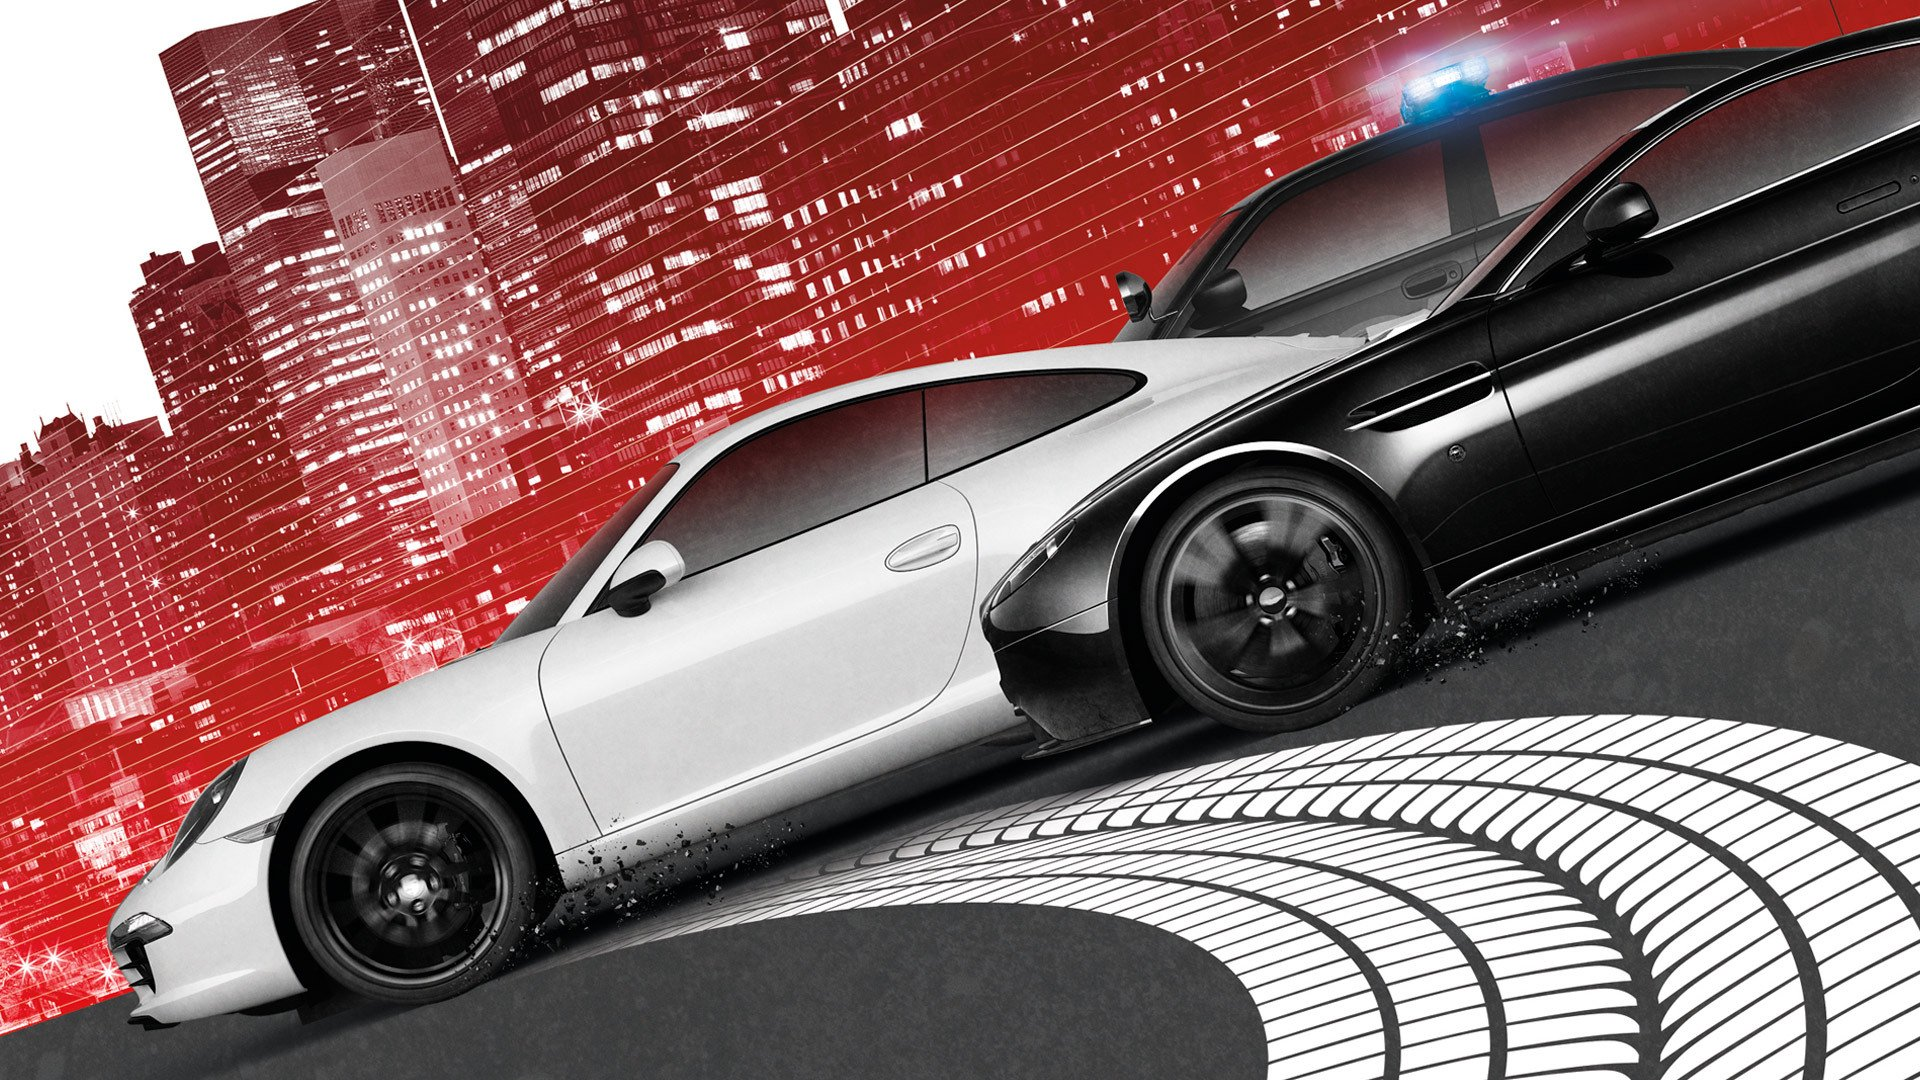 need for speed убийцы : most wanted 2012 машины автомобили гонки дома porsche полиция